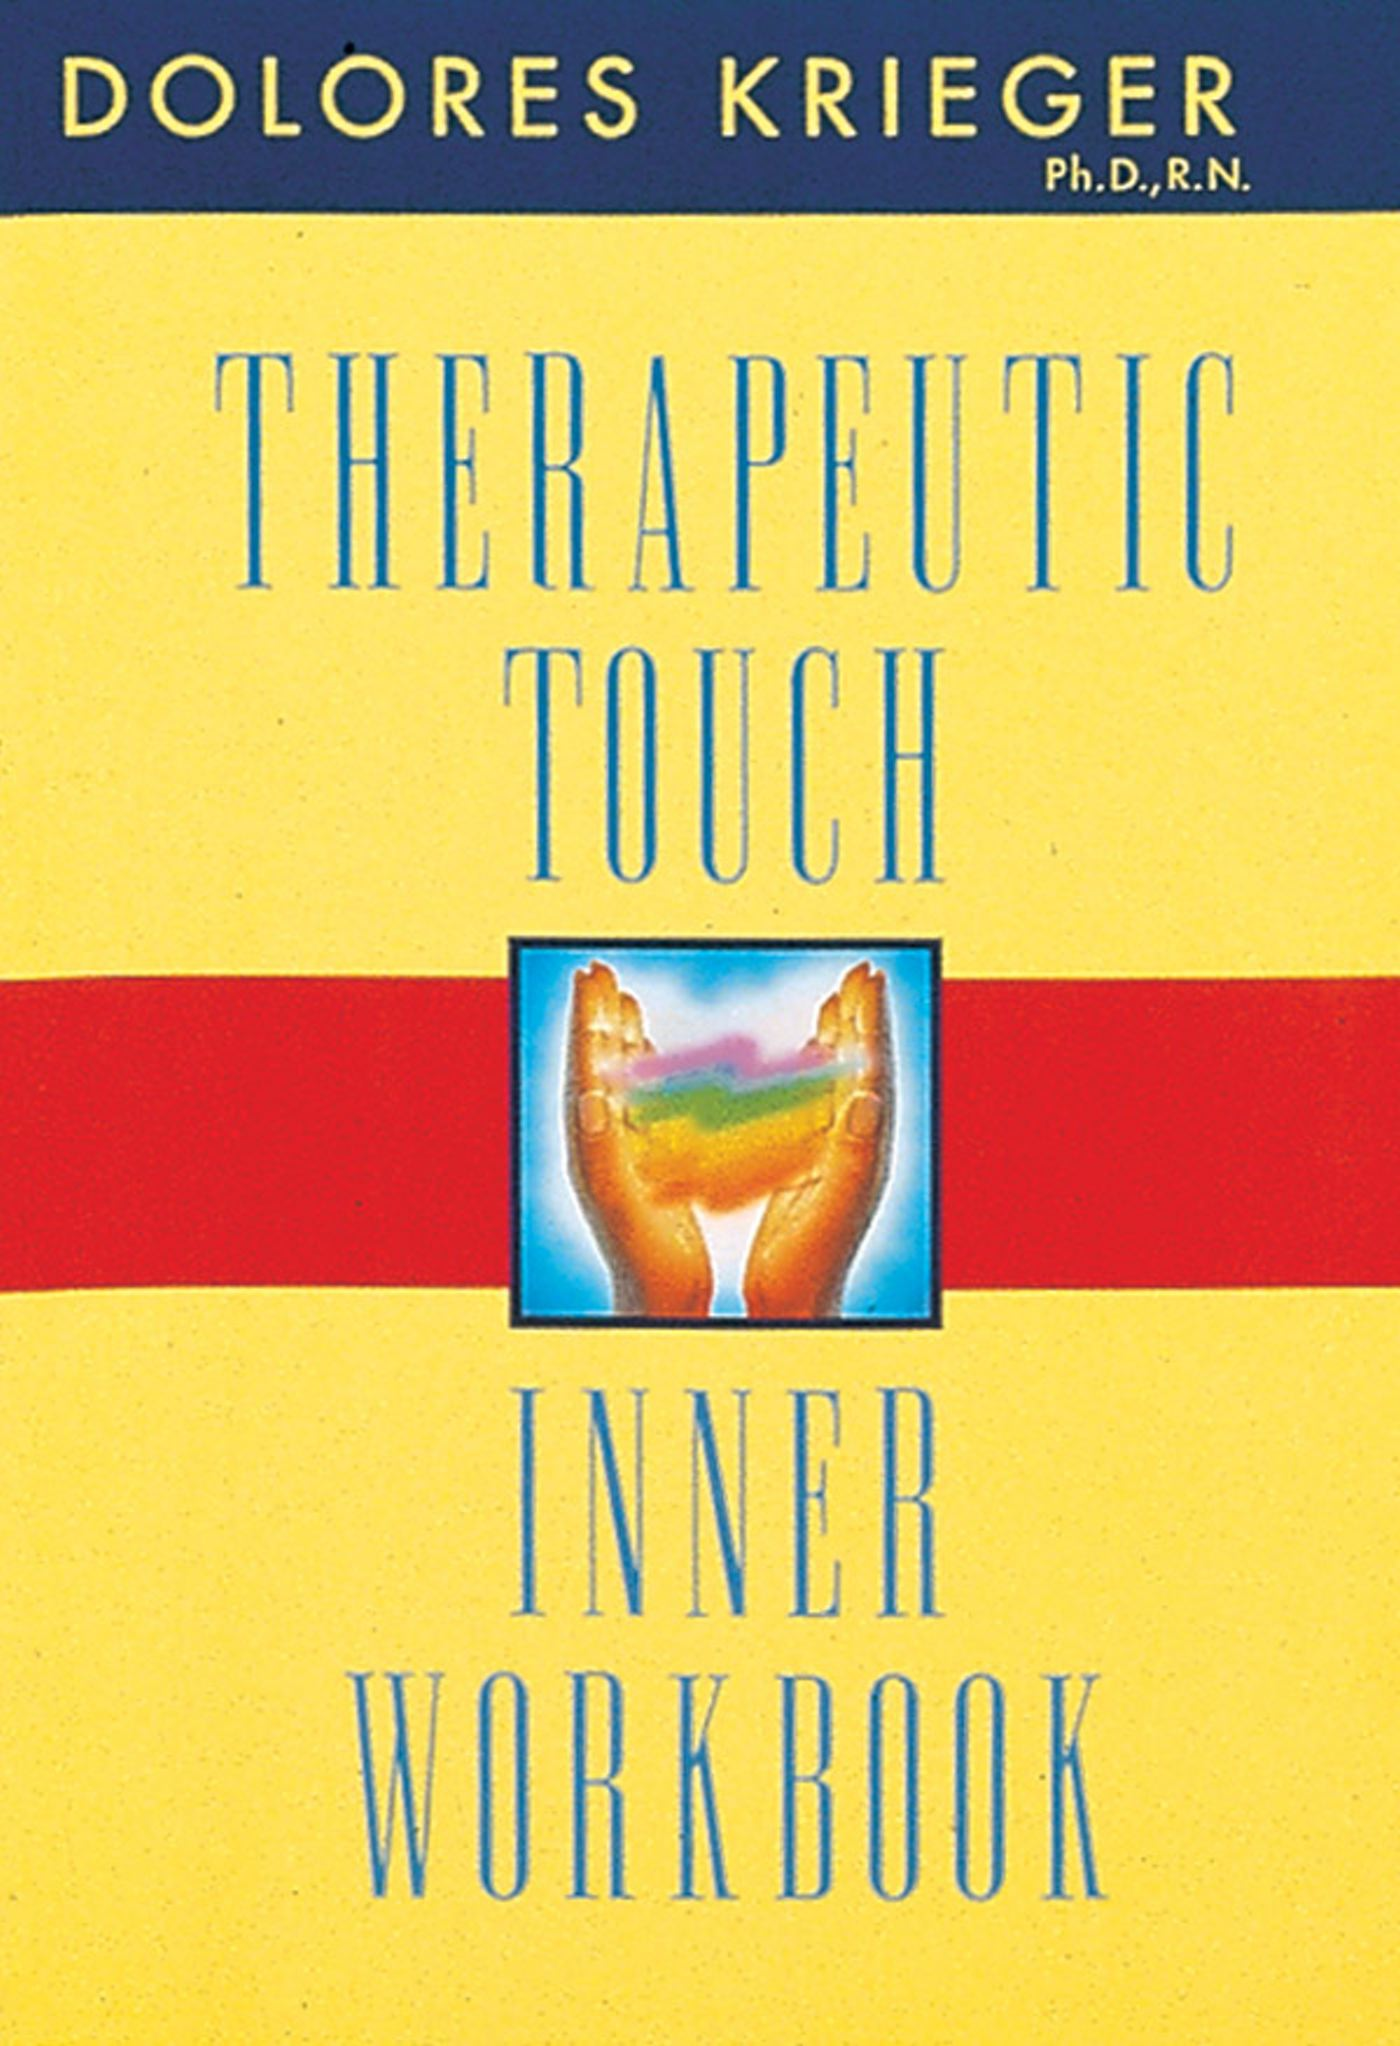 Therapeutic touch inner workbook 9781879181397 hr